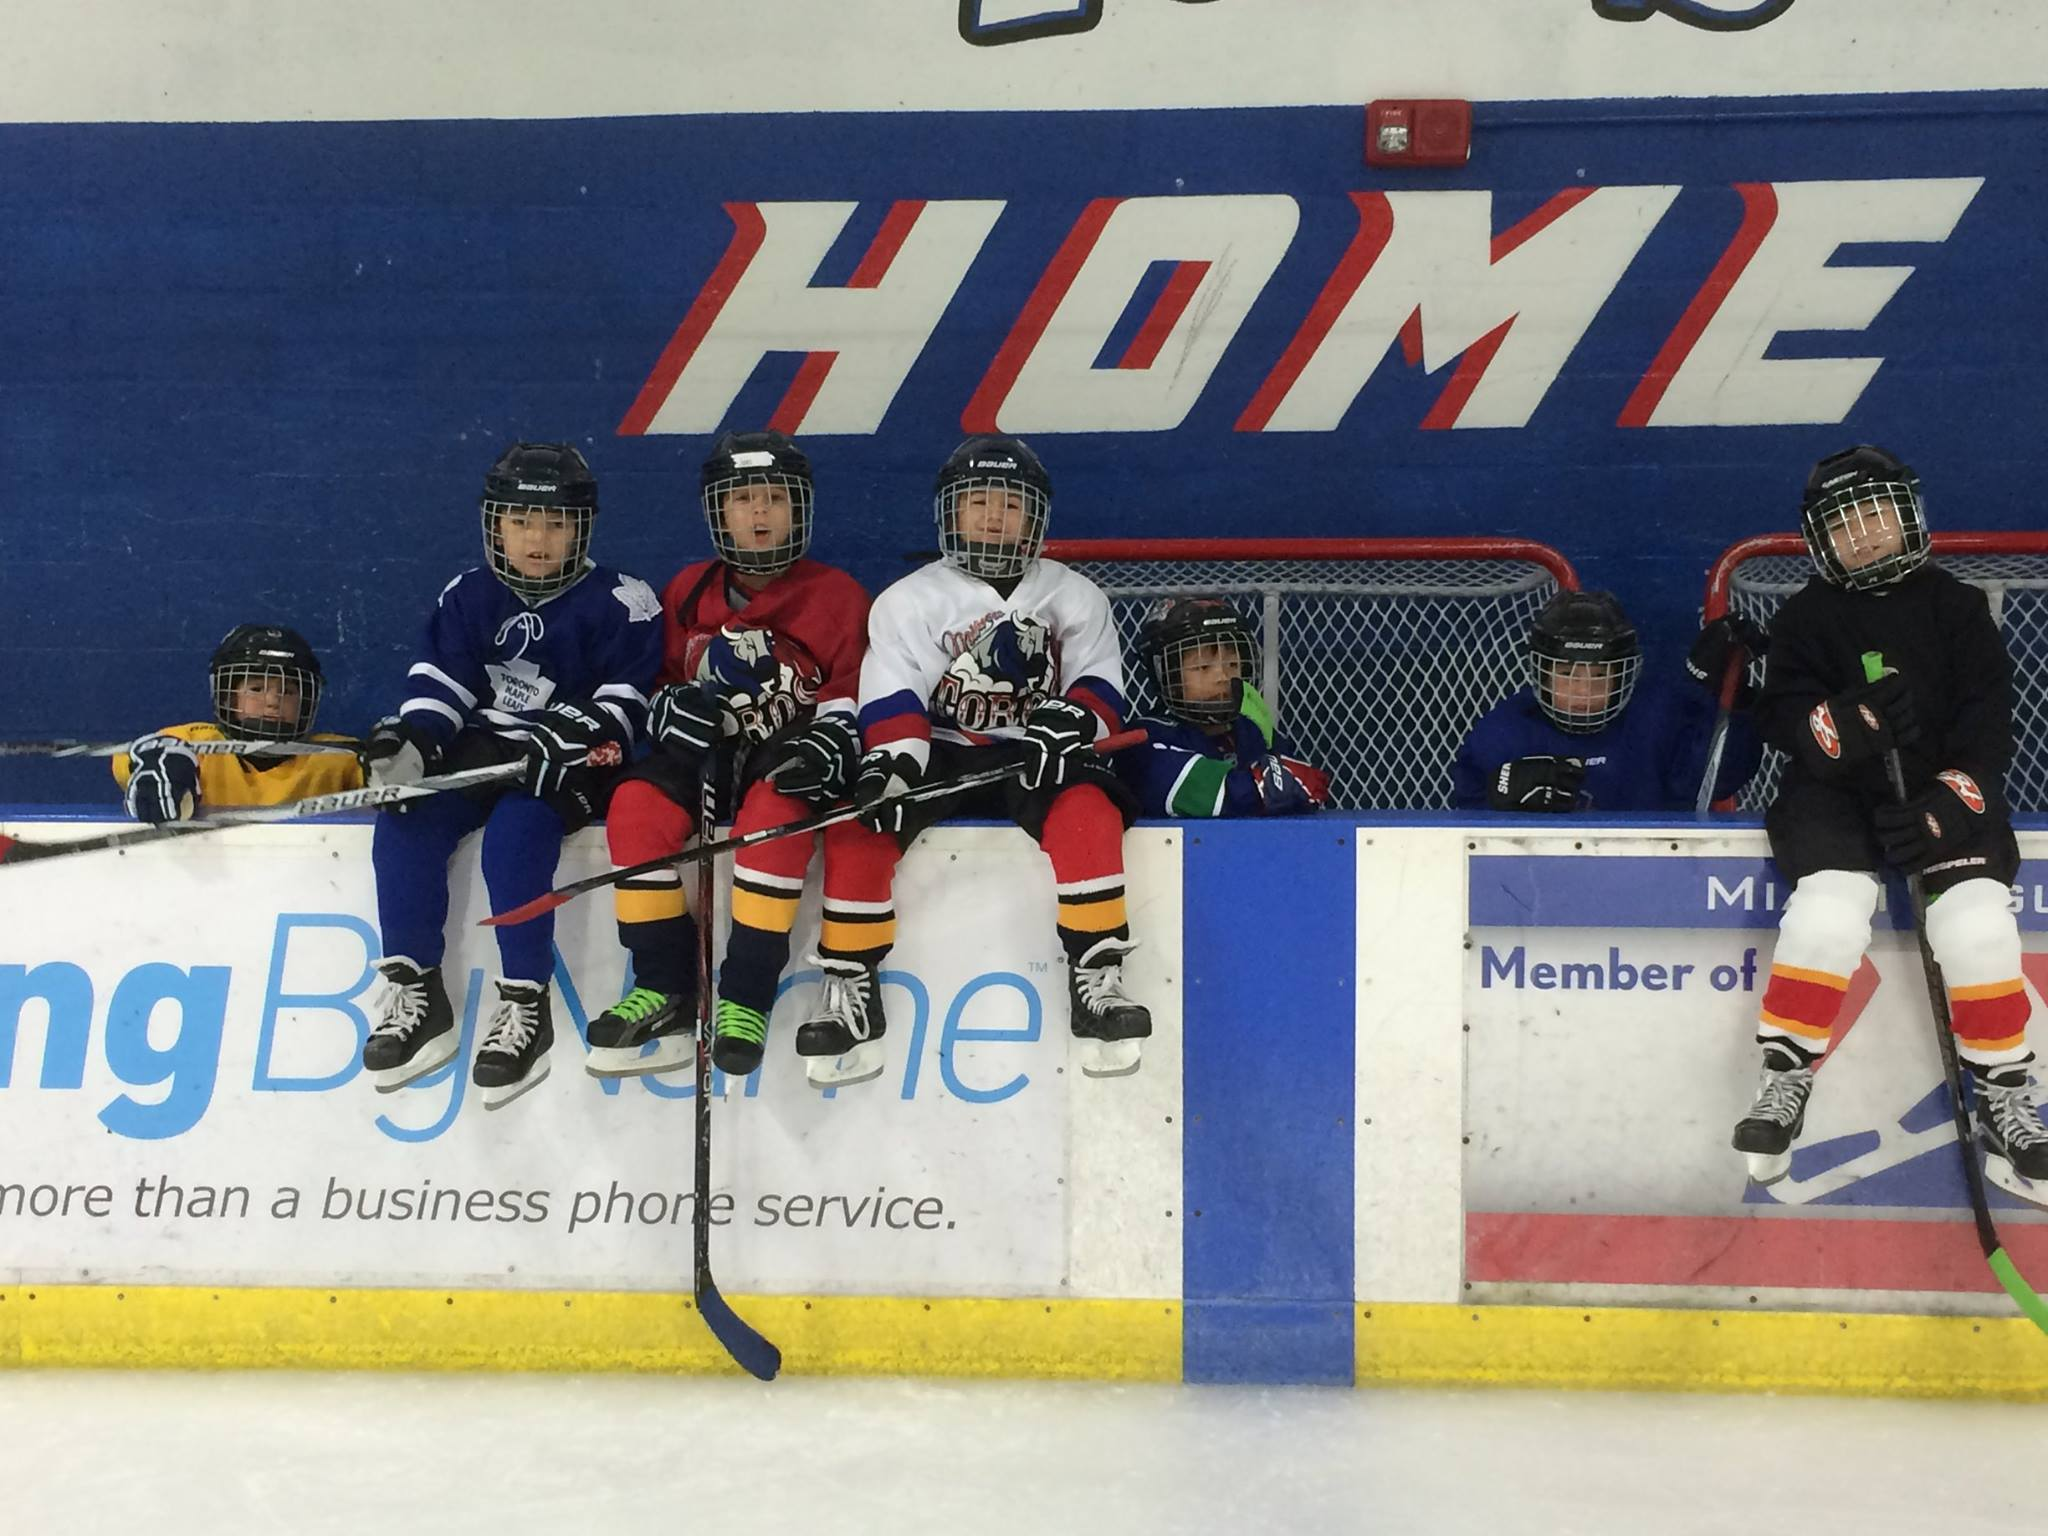 Kendall Ice Arena Webpagedepot